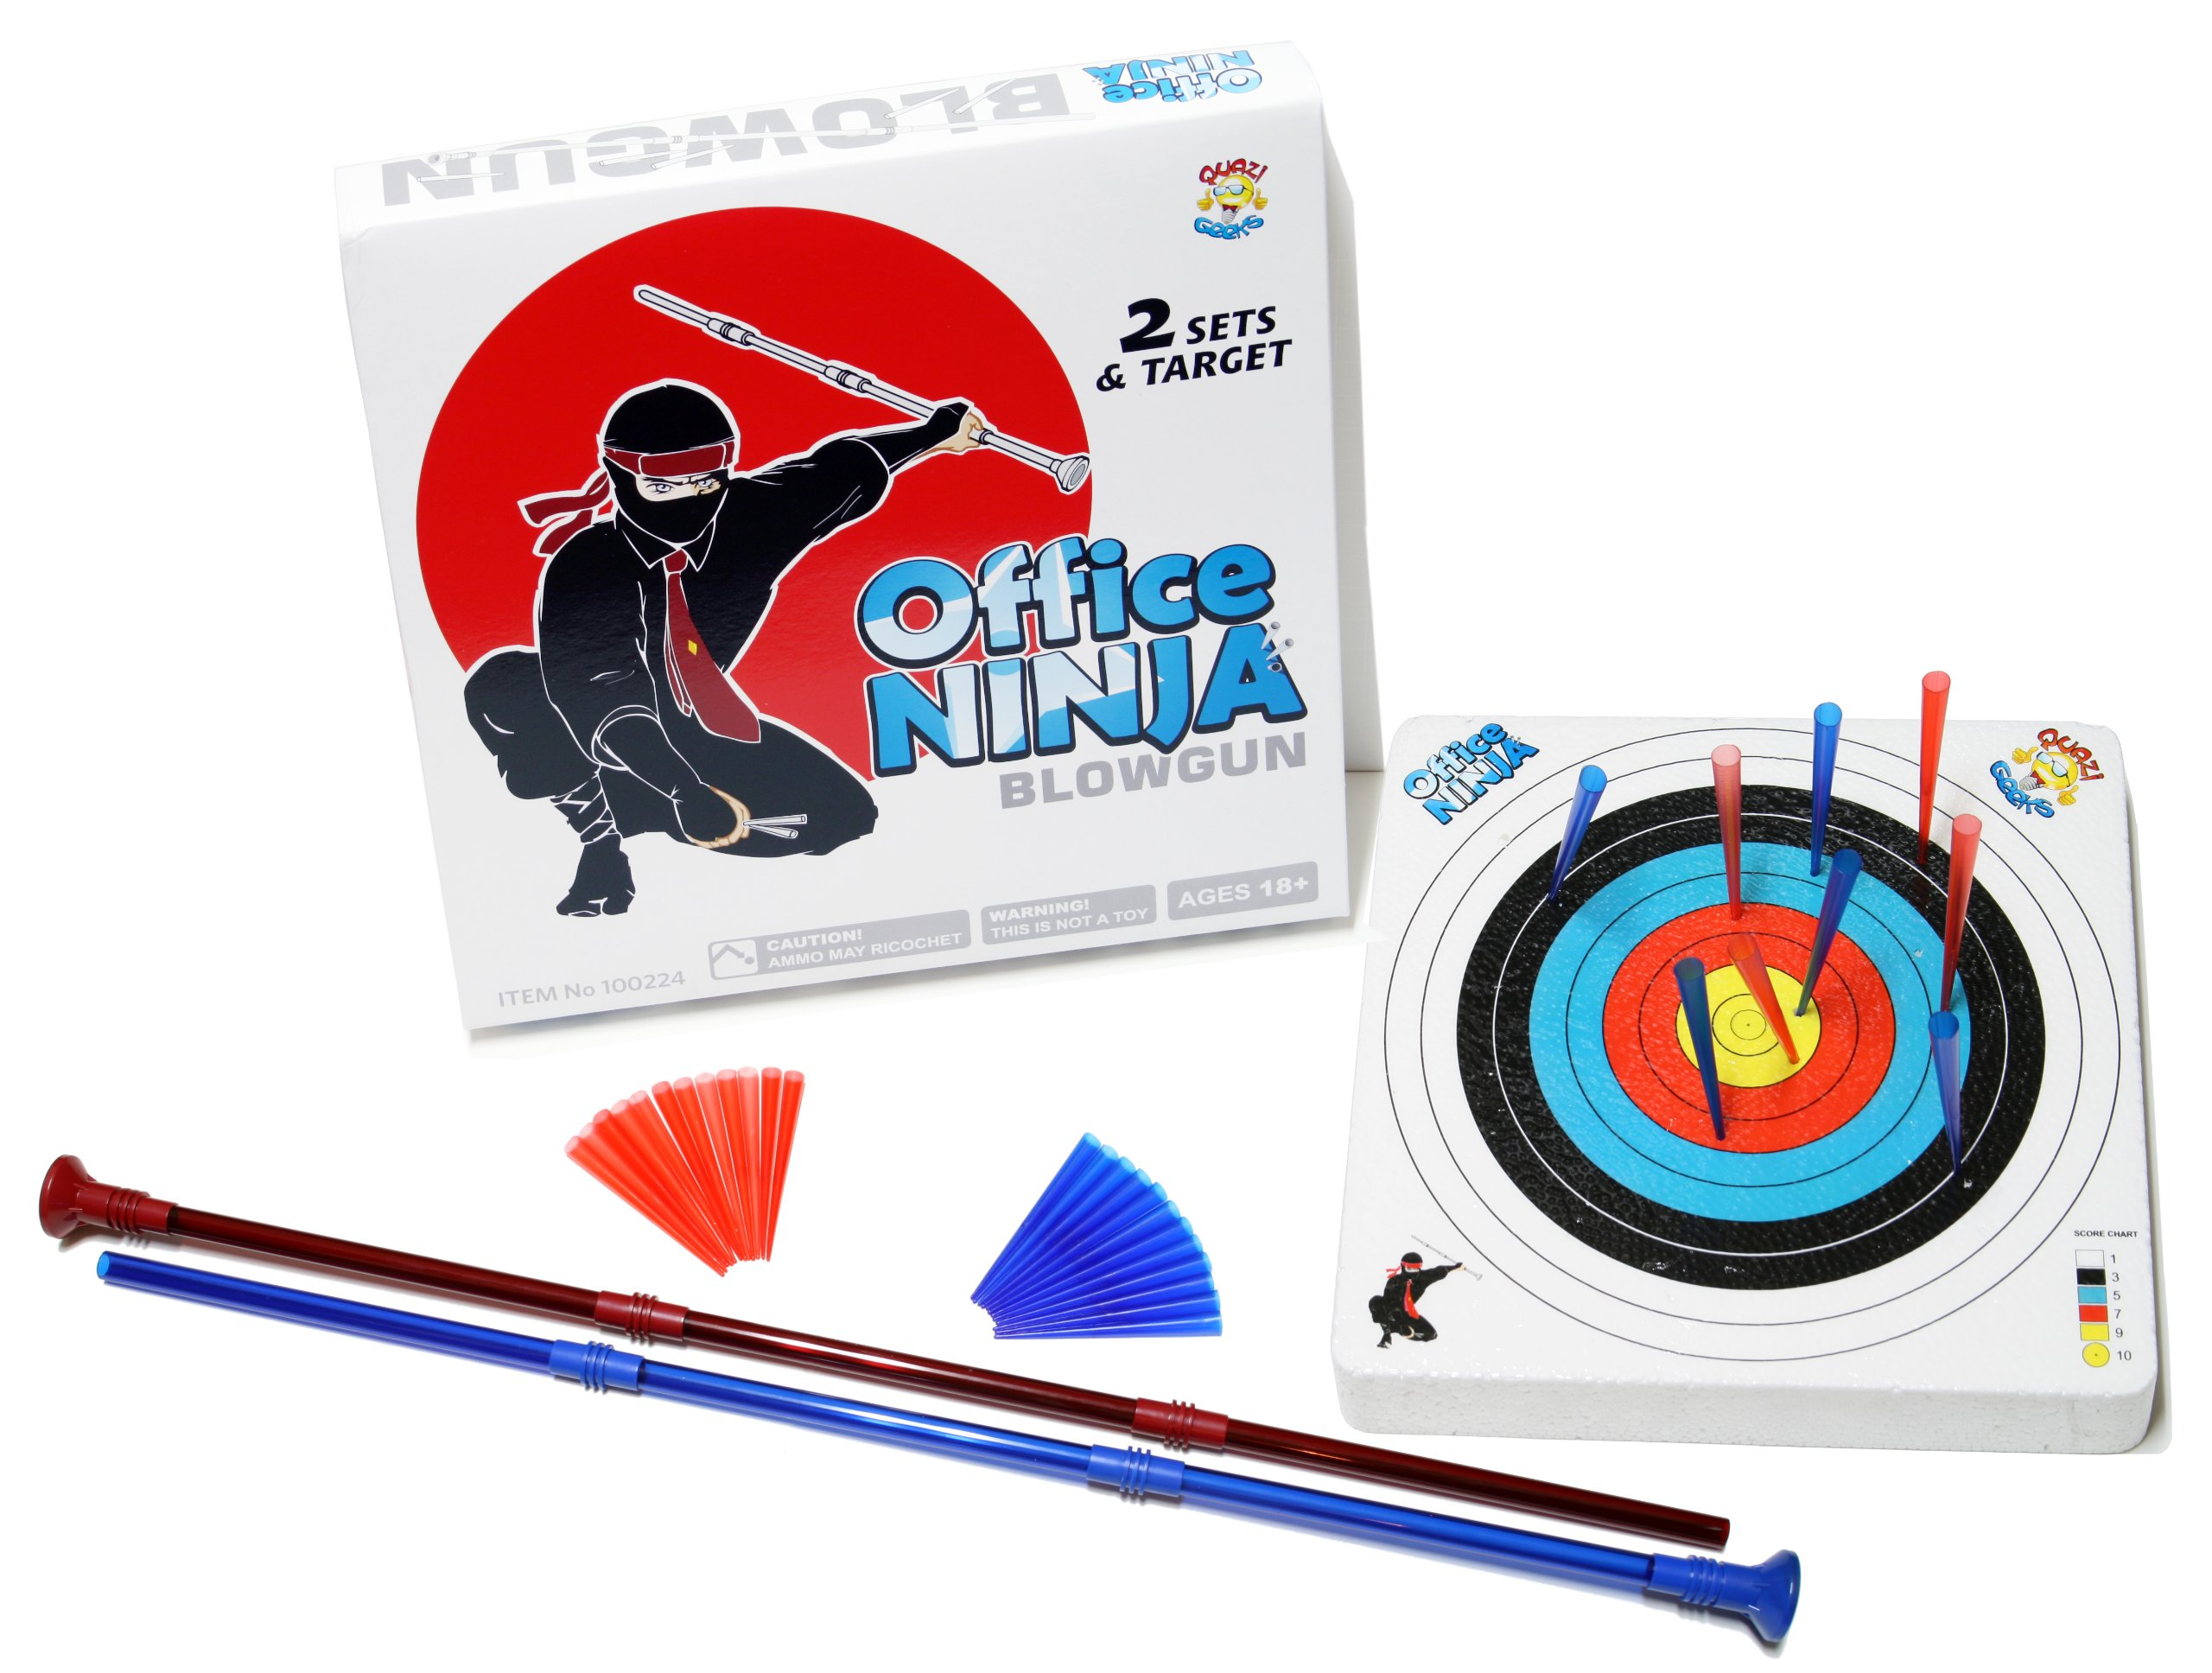 Office Ninja Desk Toy - Indoor Blowgun Kit with Soft Ammo and Target by Unitech Toys